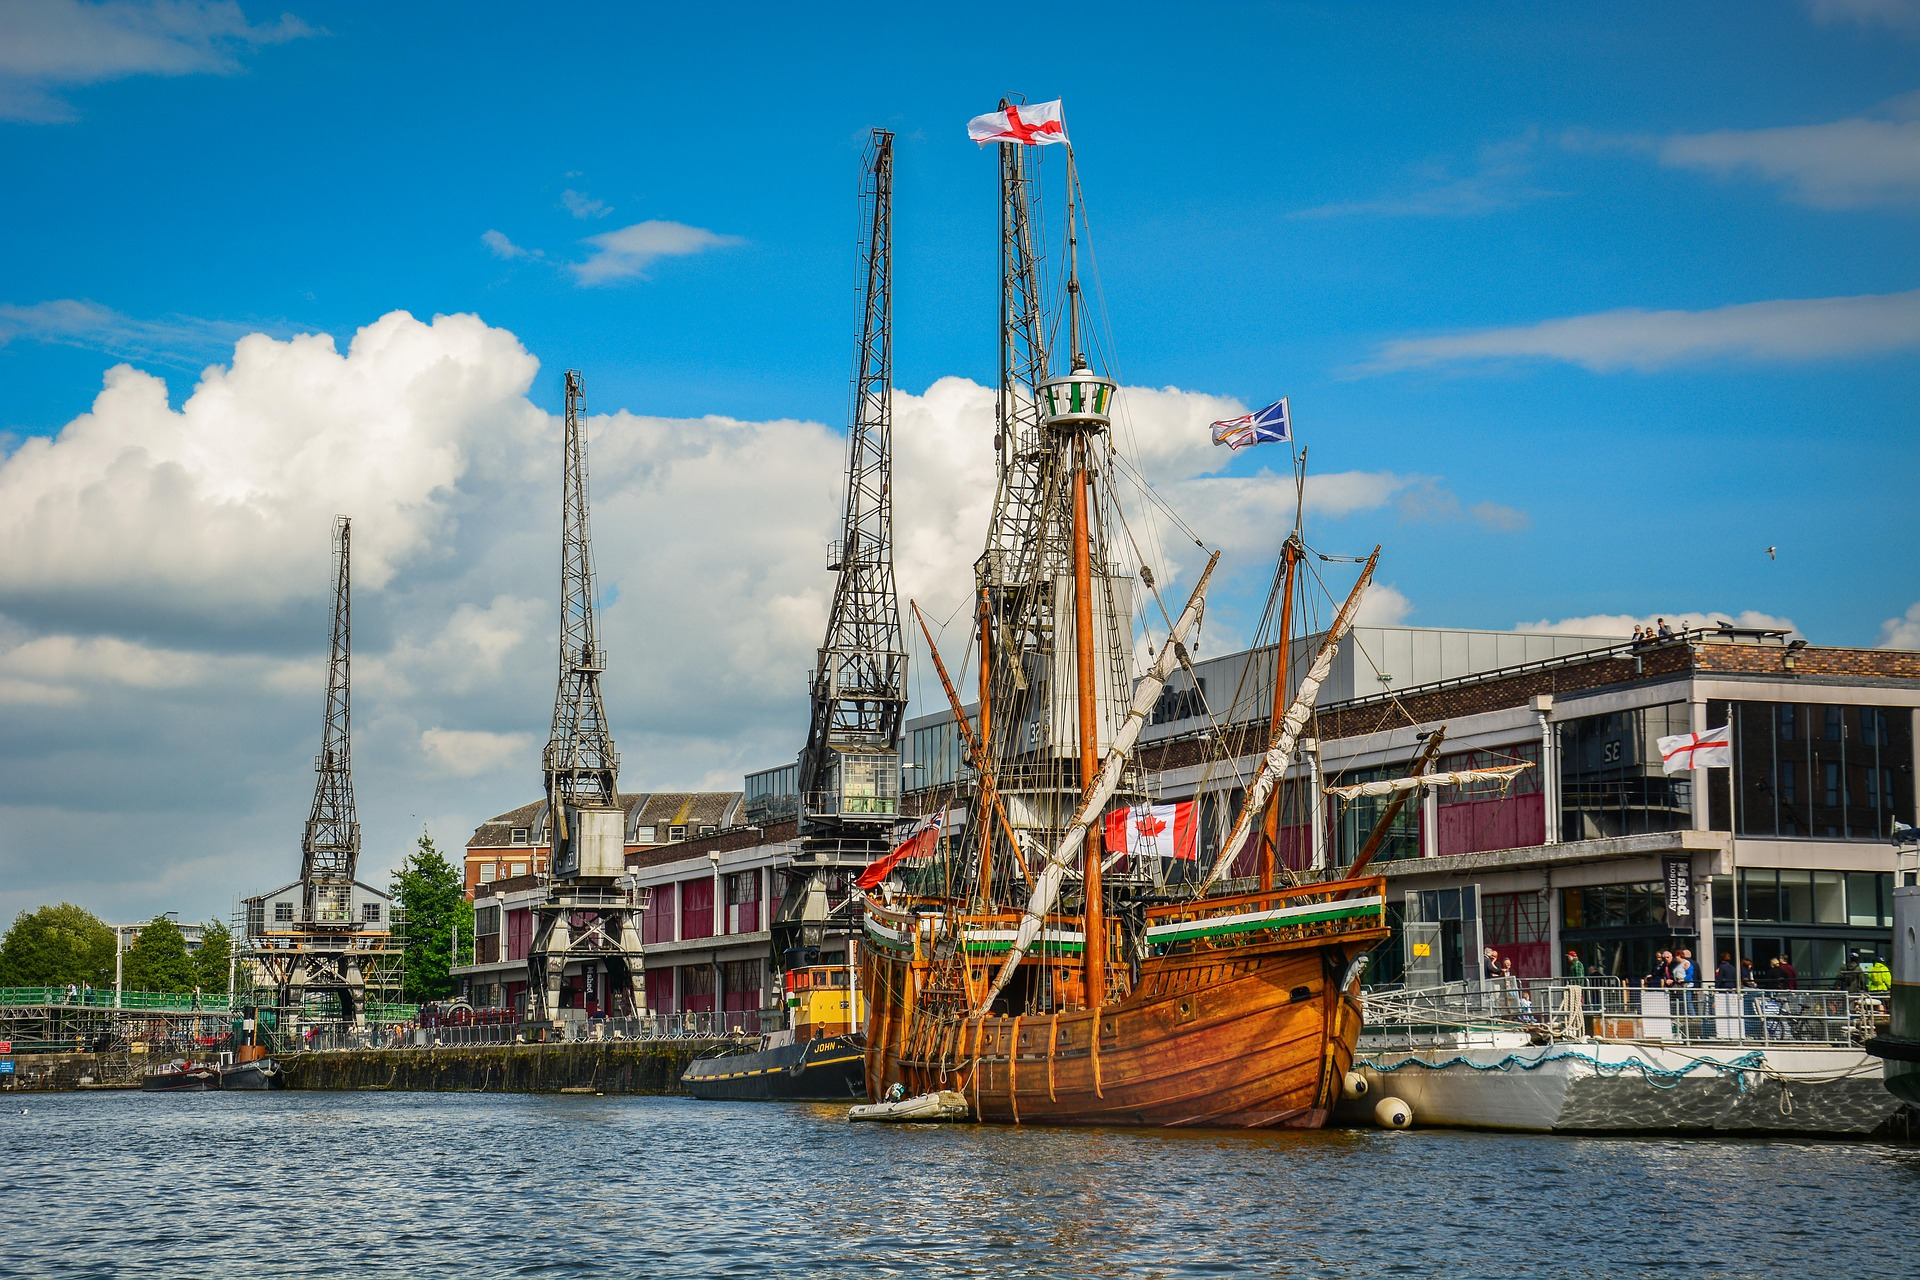 Phoe Travels to Bristol, England